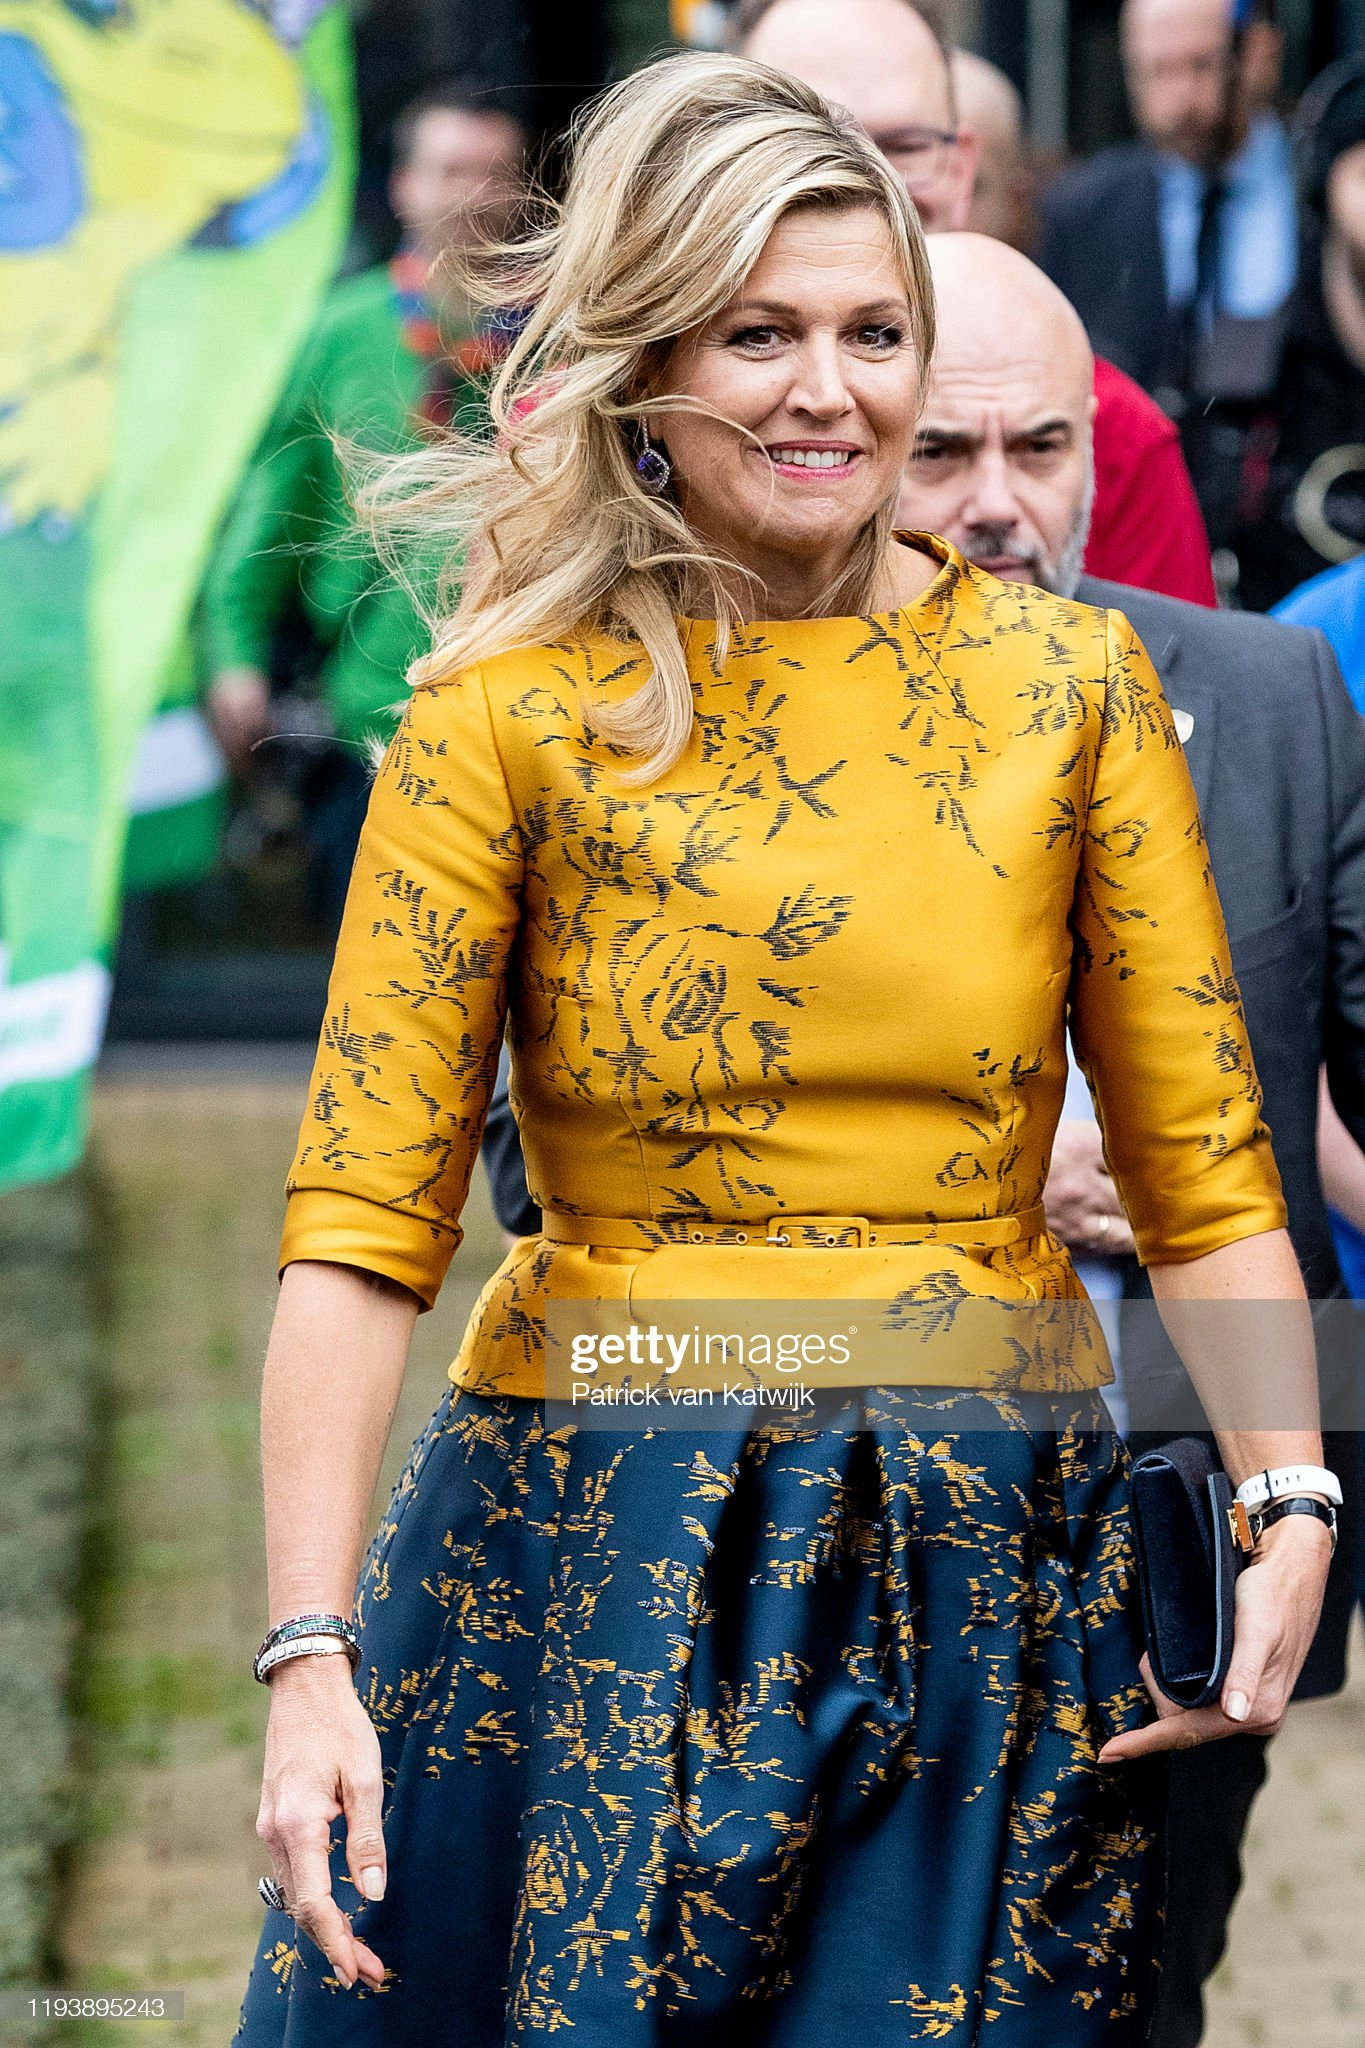 https://media.gettyimages.com/photos/queen-maxima-of-the-netherlands-during-a-visit-to-the-scouting-cubs-picture-id1193895243?s=2048x2048